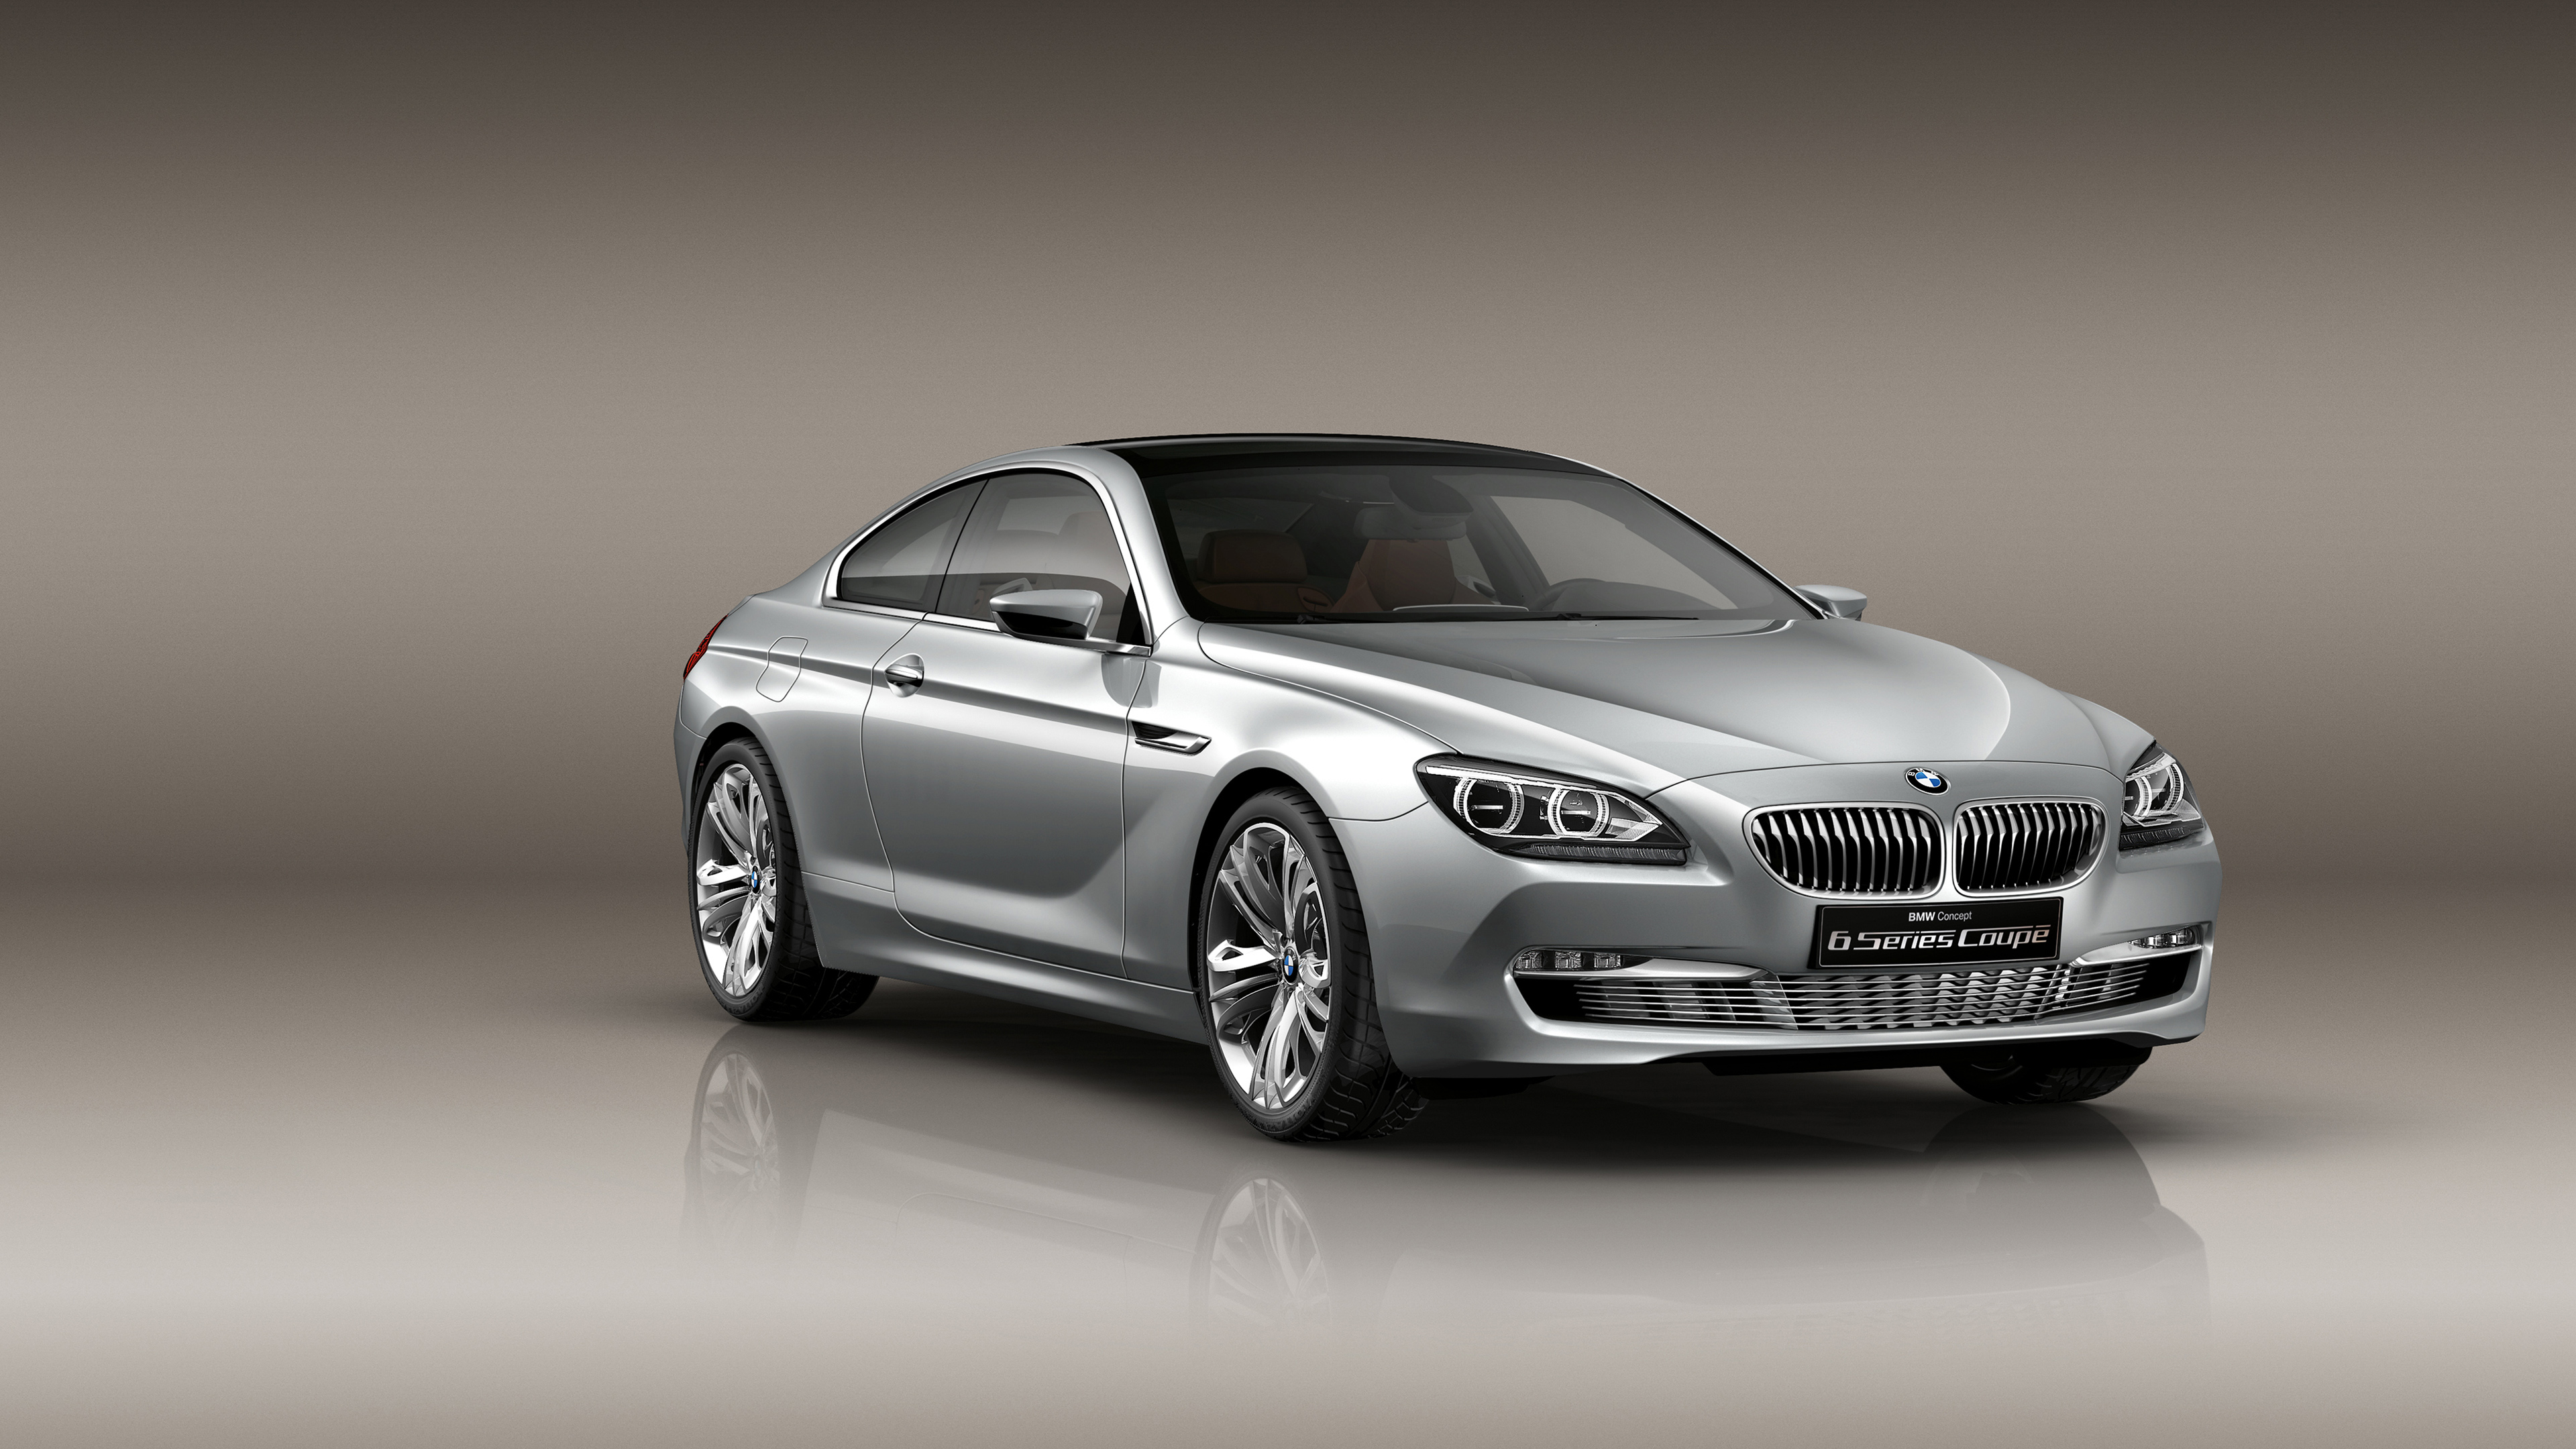 bmw 6 series gran coupe f13 wallpaper hd car wallpapers id 6003. Black Bedroom Furniture Sets. Home Design Ideas